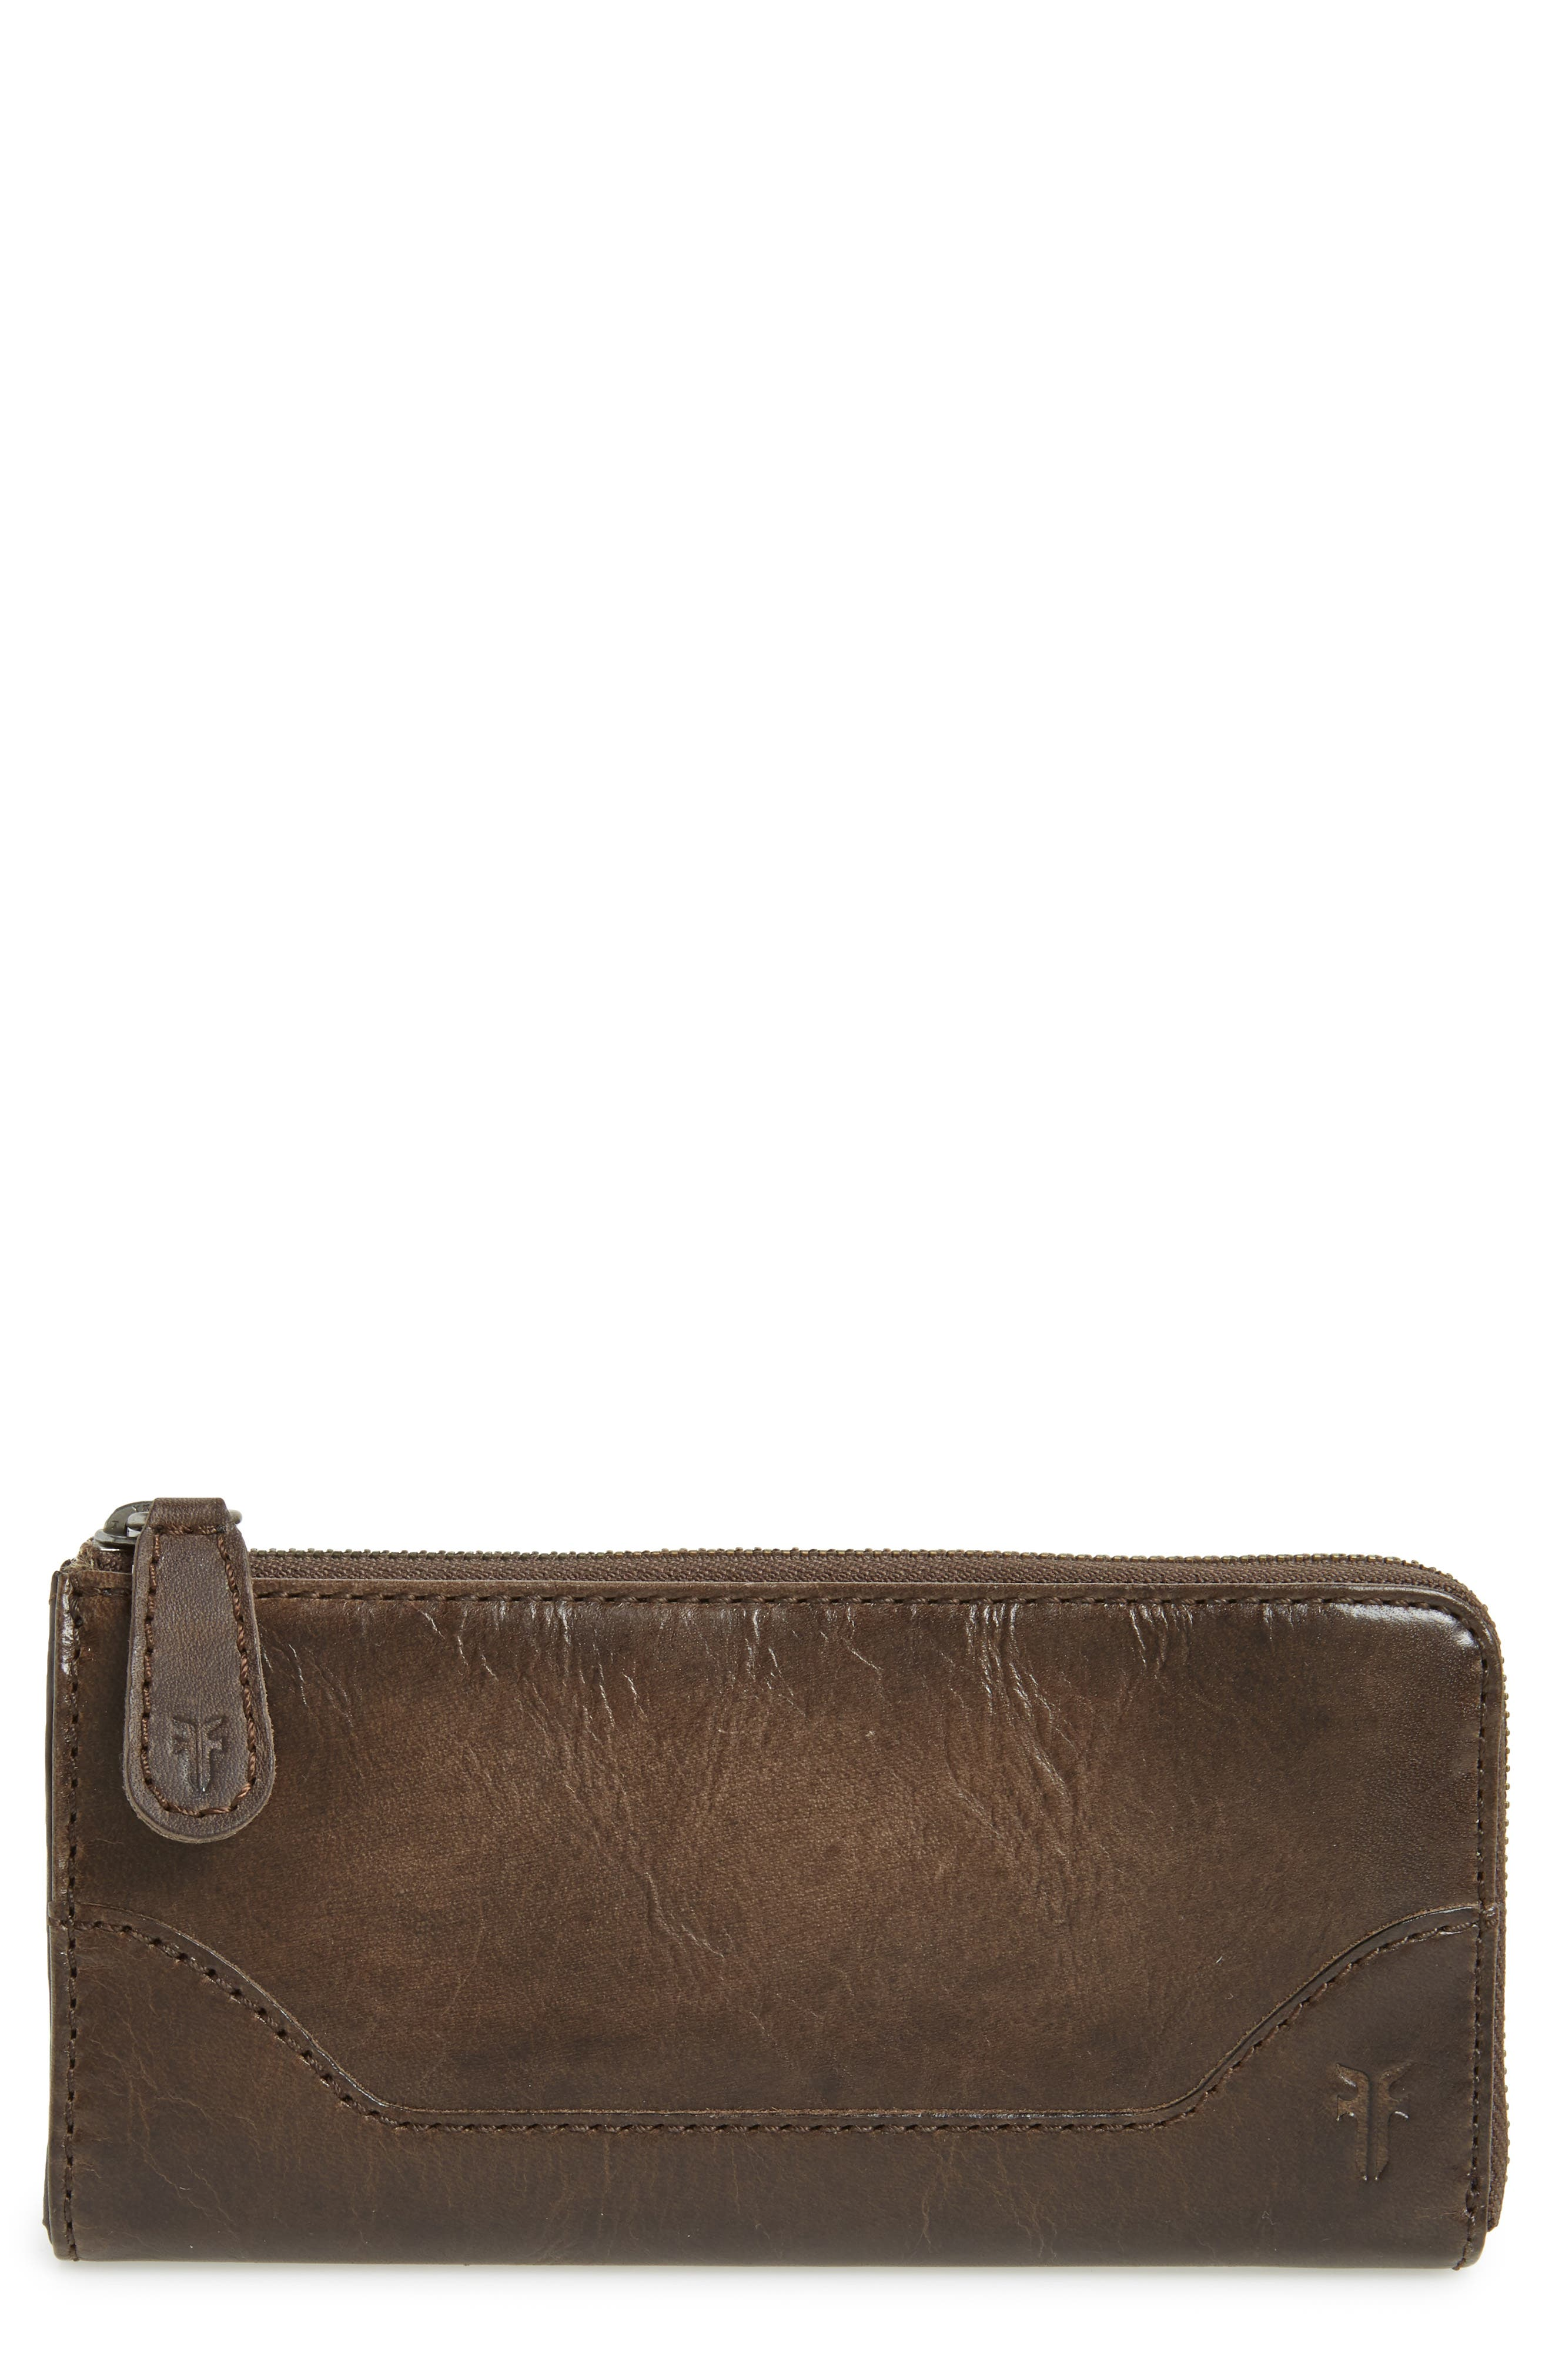 Melissa Leather Wallet,                         Main,                         color, Slate